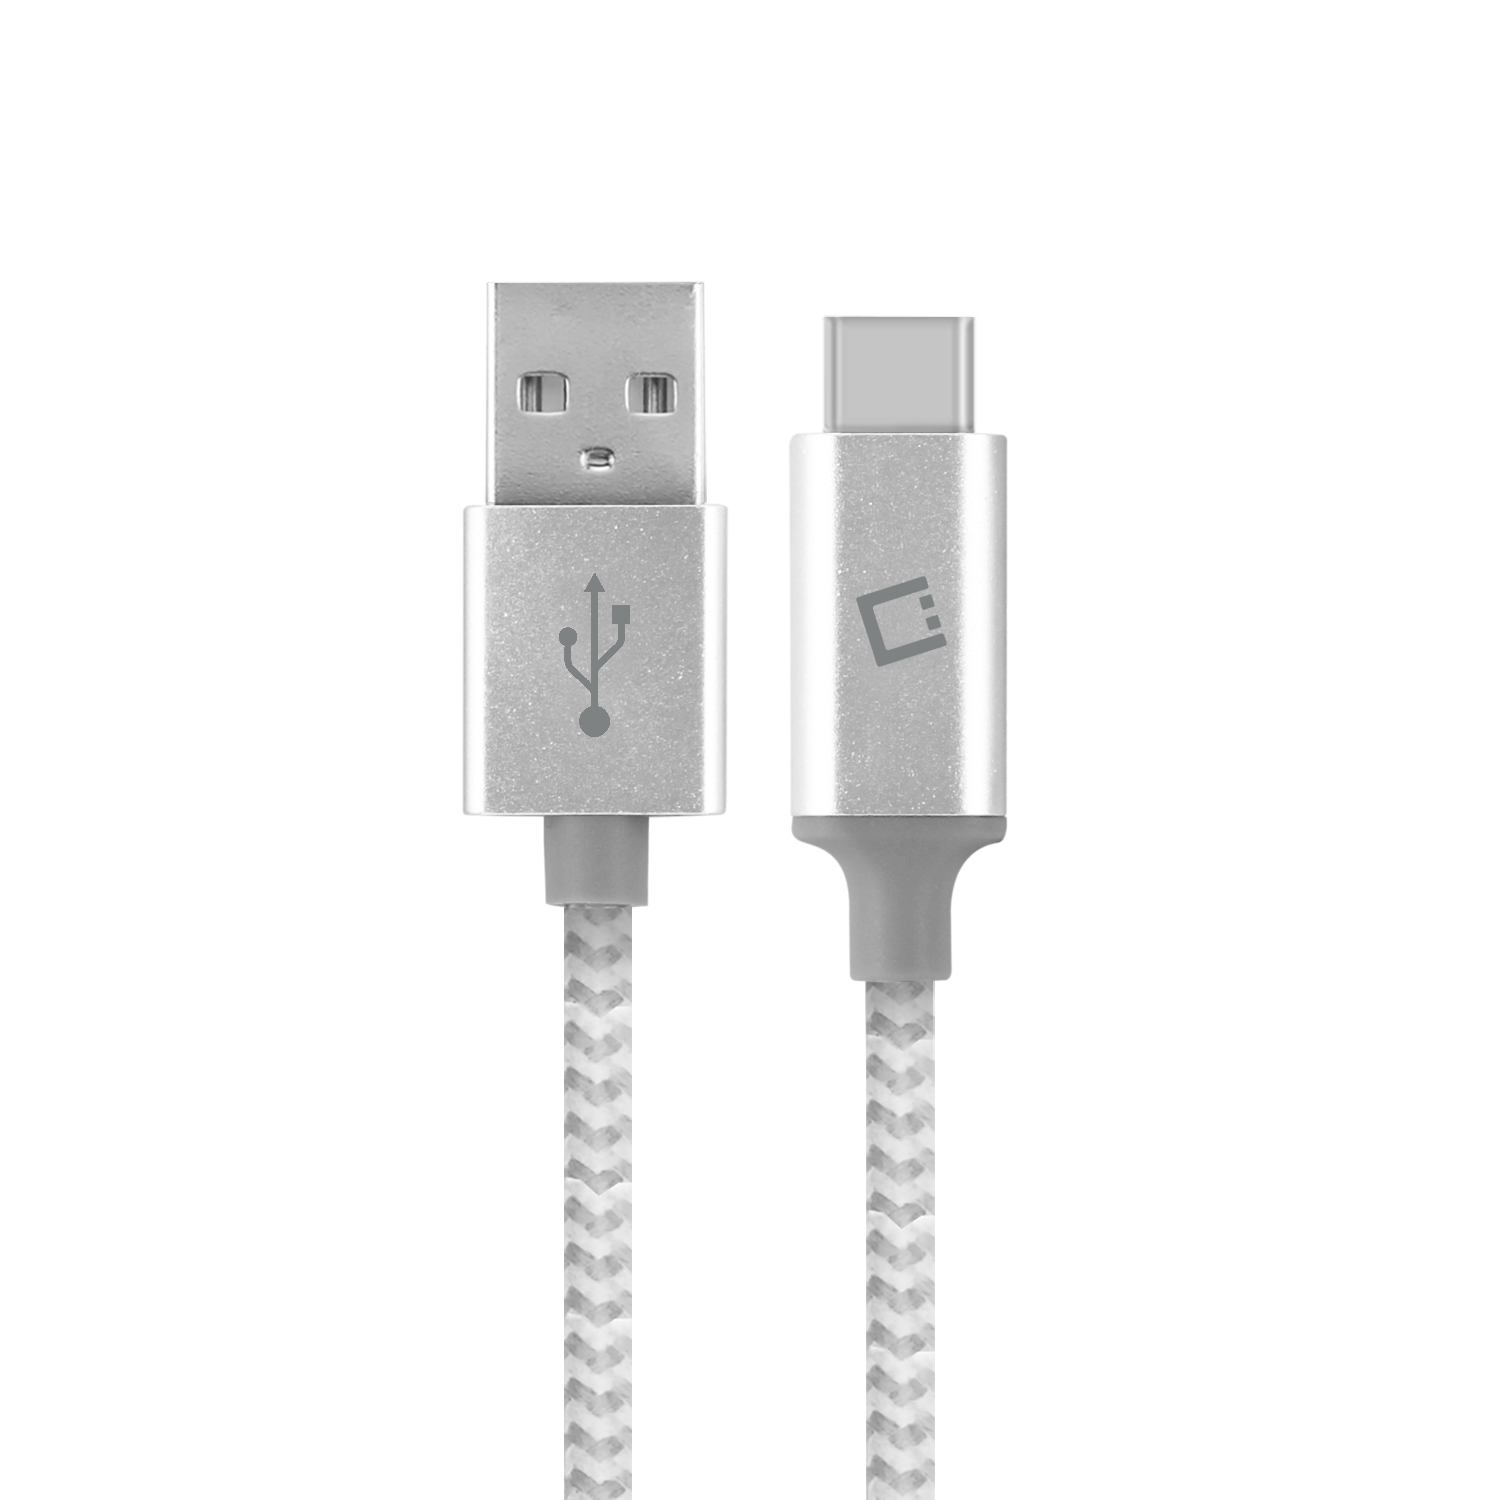 ZTE Blade V8 Pro USB Type-C To Type-A Braided Data Power Cable White 4ft Round